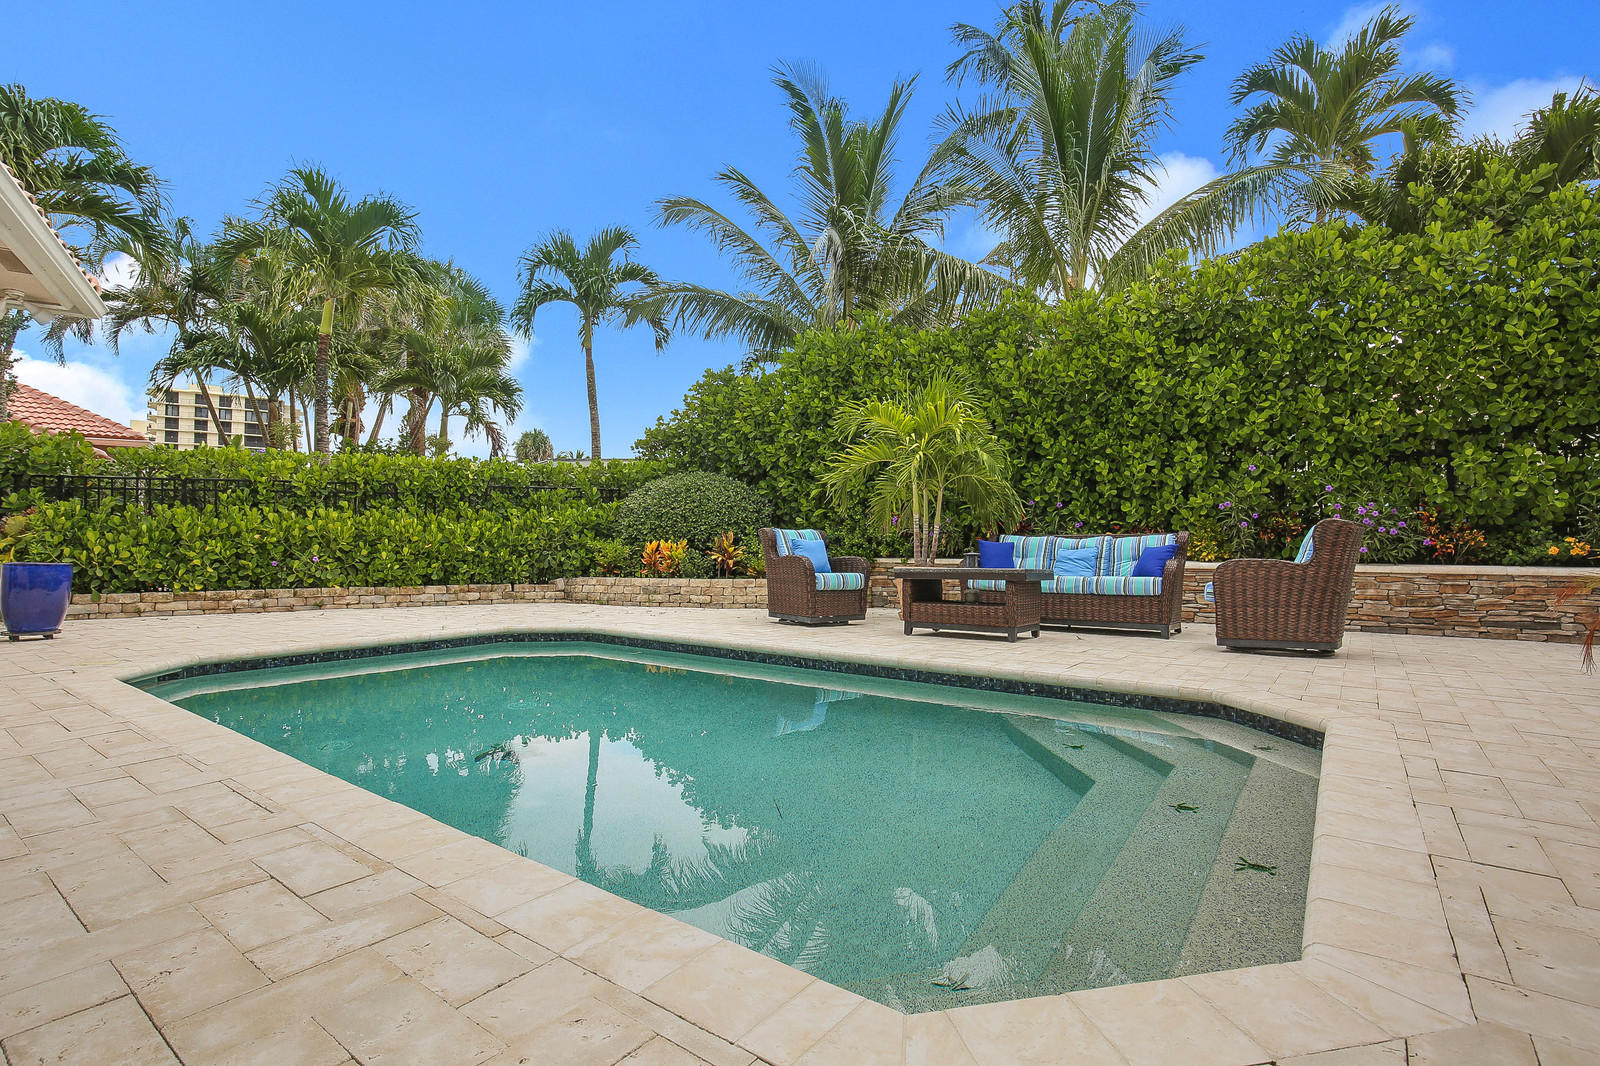 56 Colony Road, Jupiter Inlet Colony, Florida 33469, 3 Bedrooms Bedrooms, ,3.1 BathroomsBathrooms,A,Single family,Colony,RX-10491967